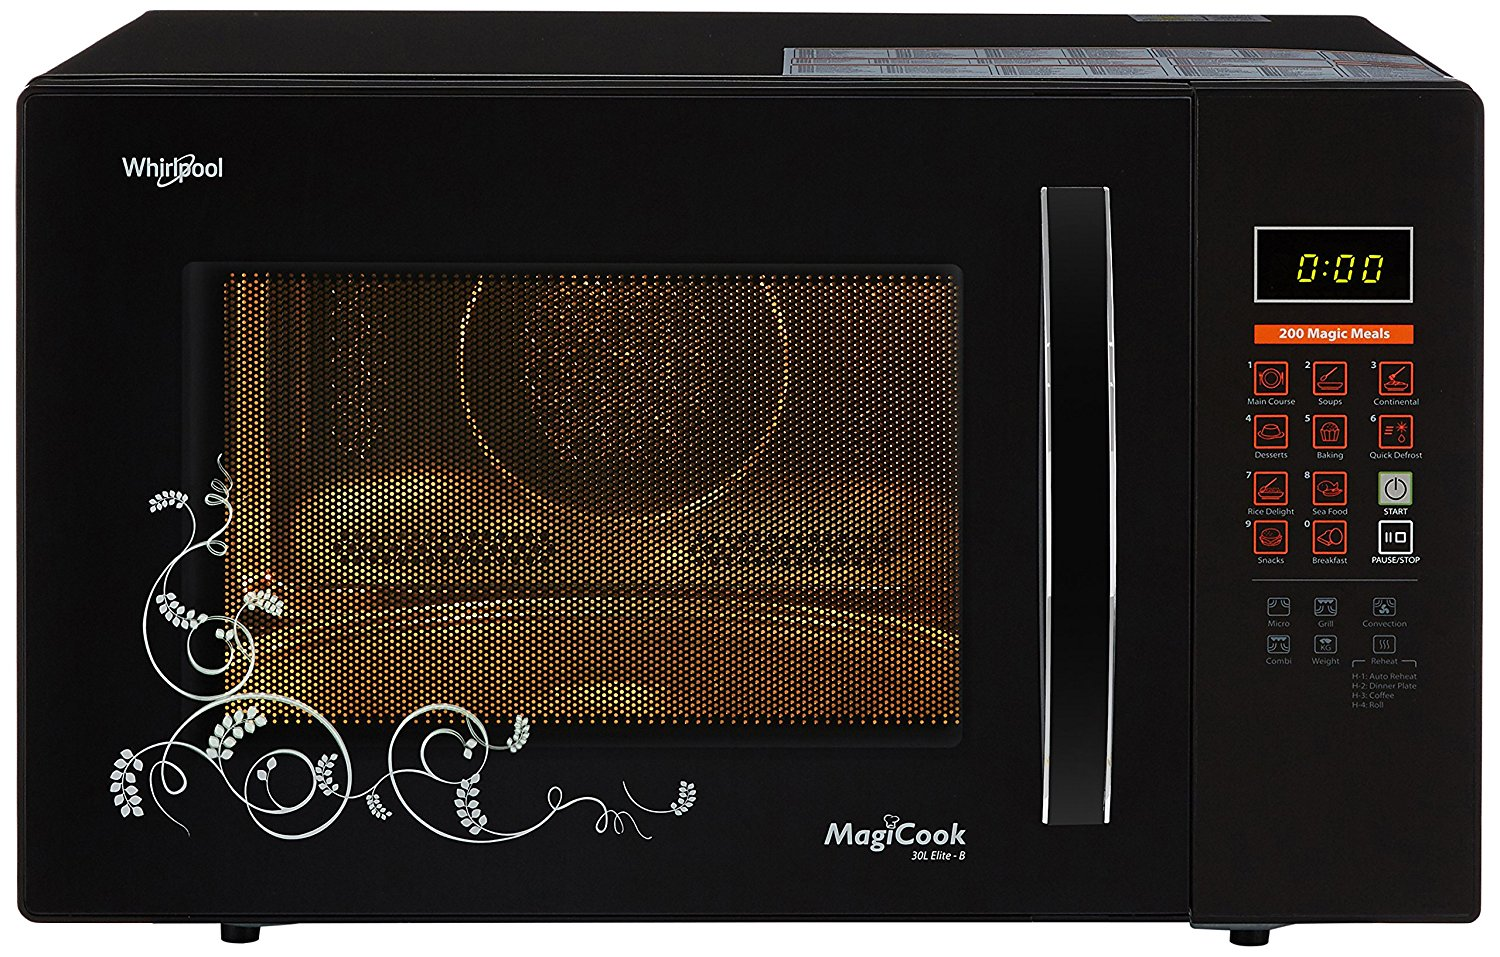 Top 10 Best Convection Microwave Oven In India 2020